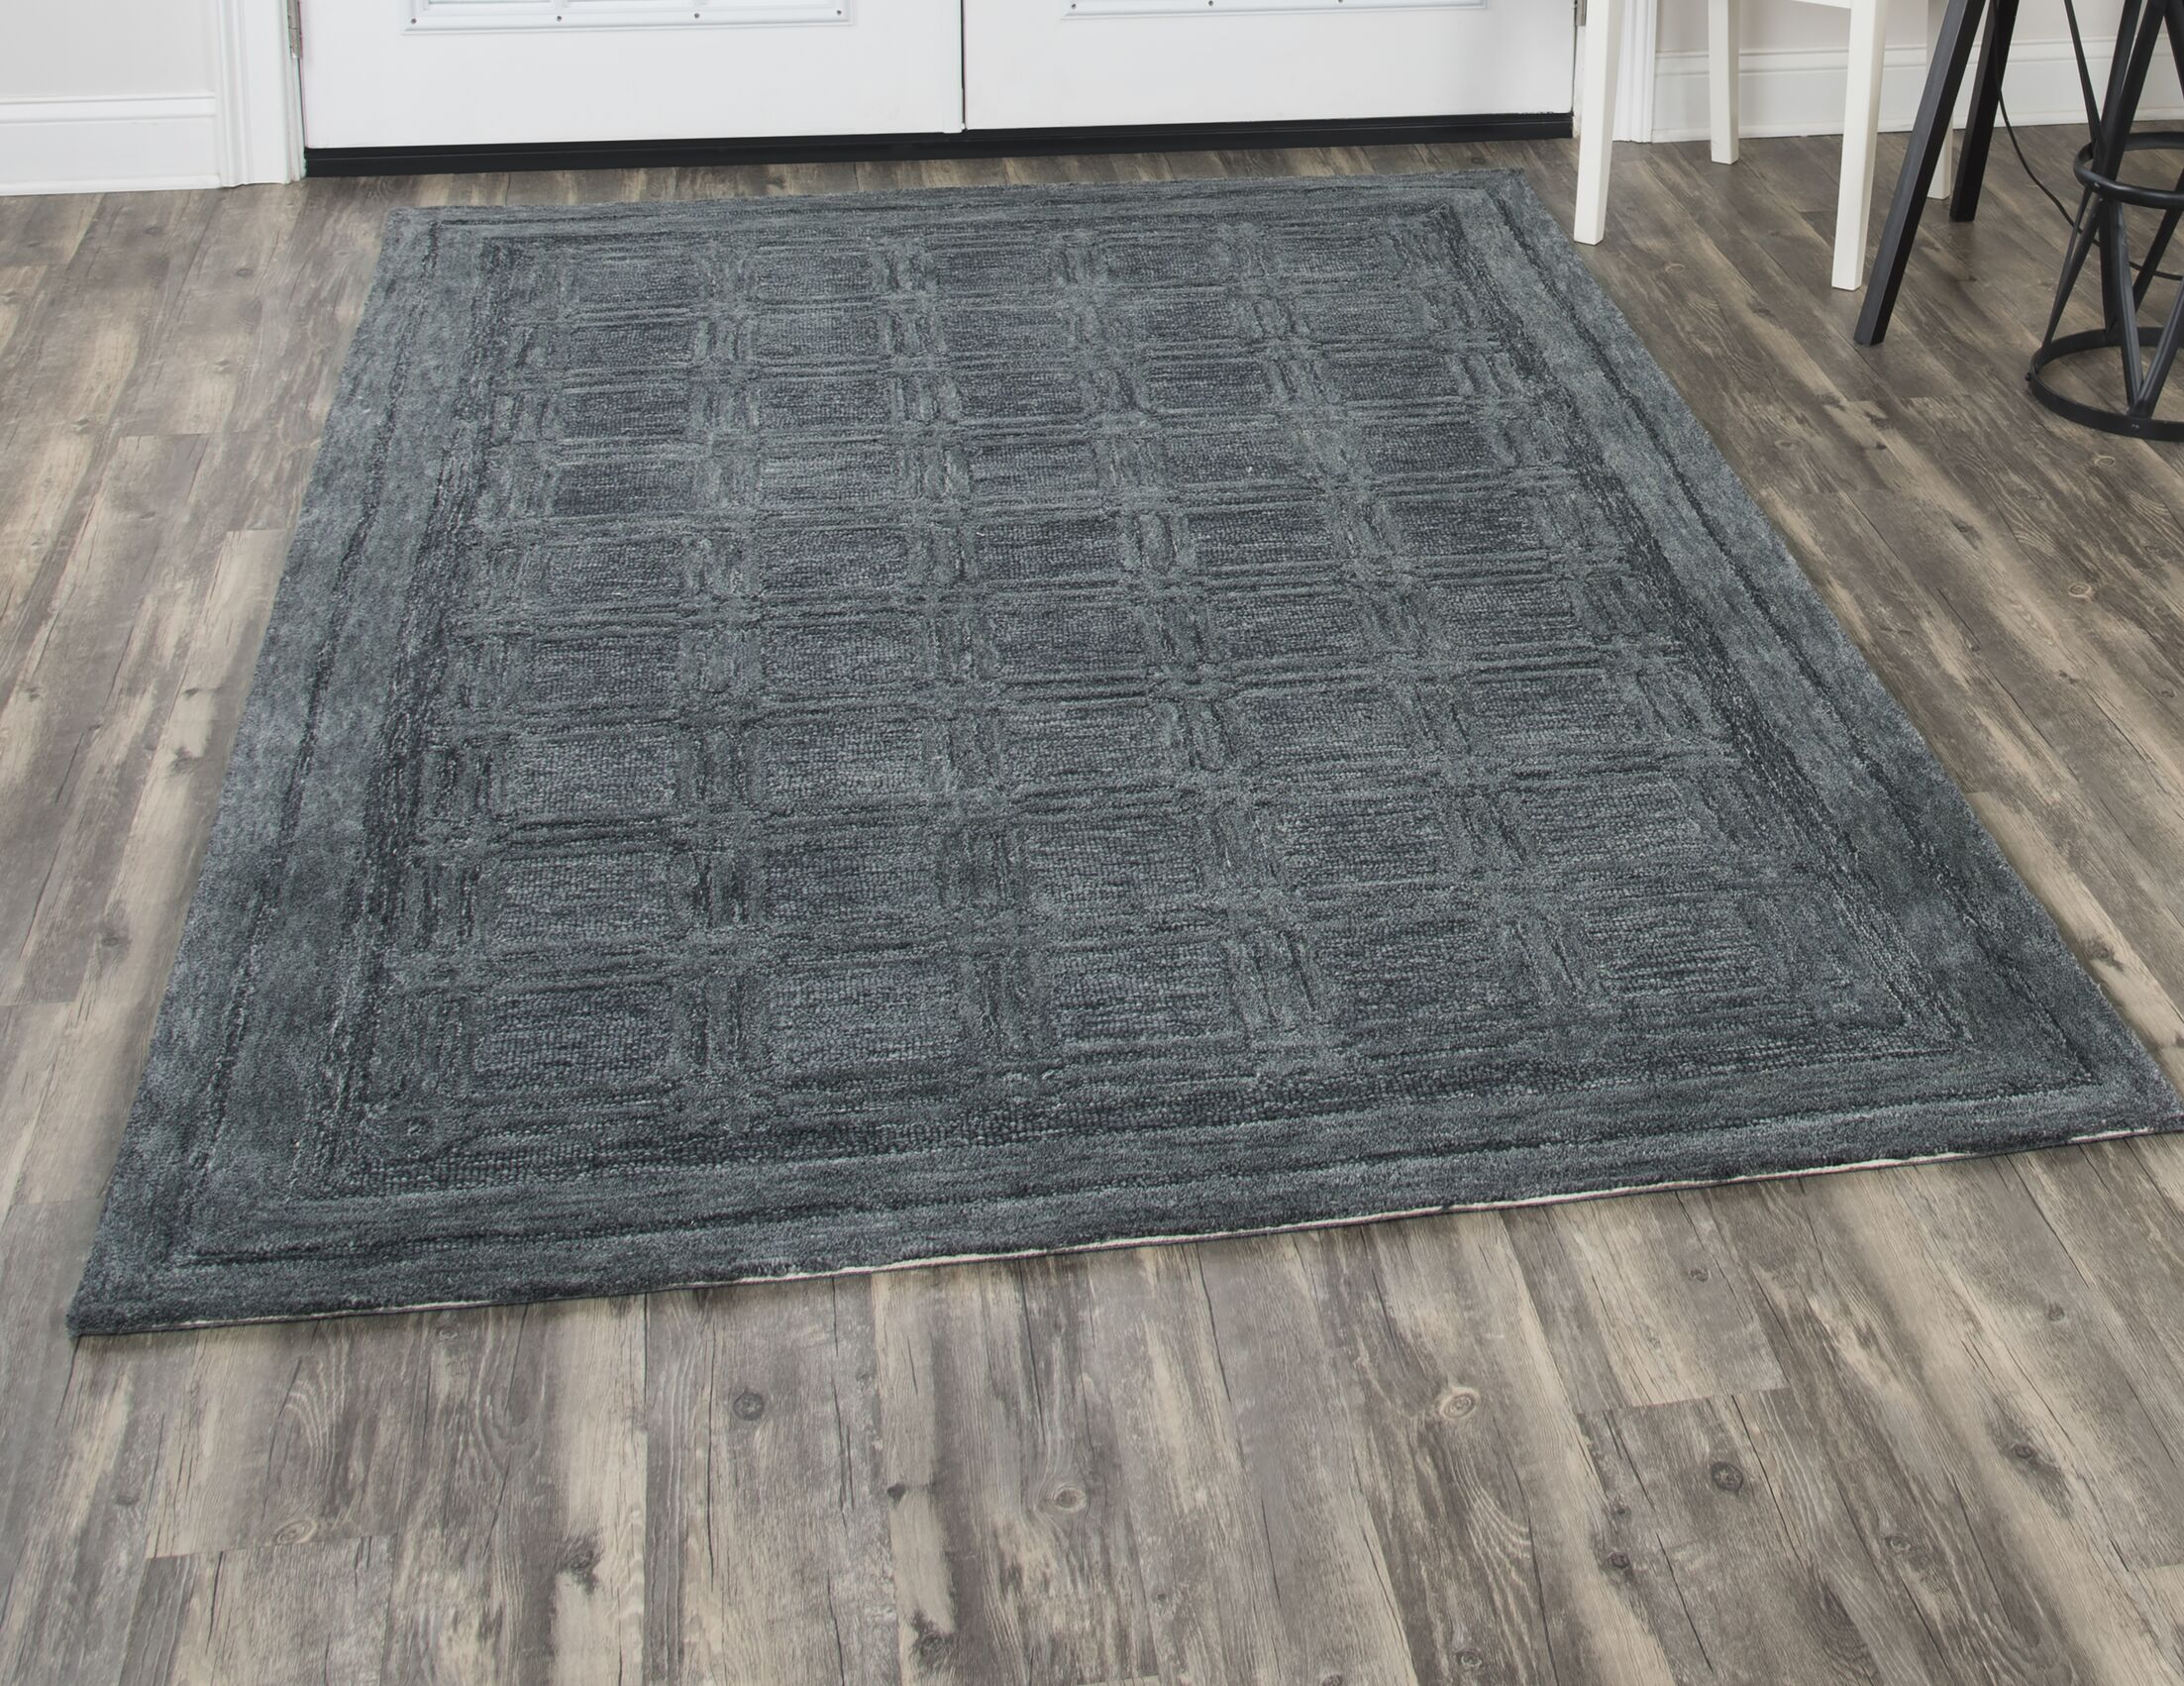 Phan Hand-Tufted Wool Dark Gray Area Rug Rug Size: Rectangle 10' x 13'